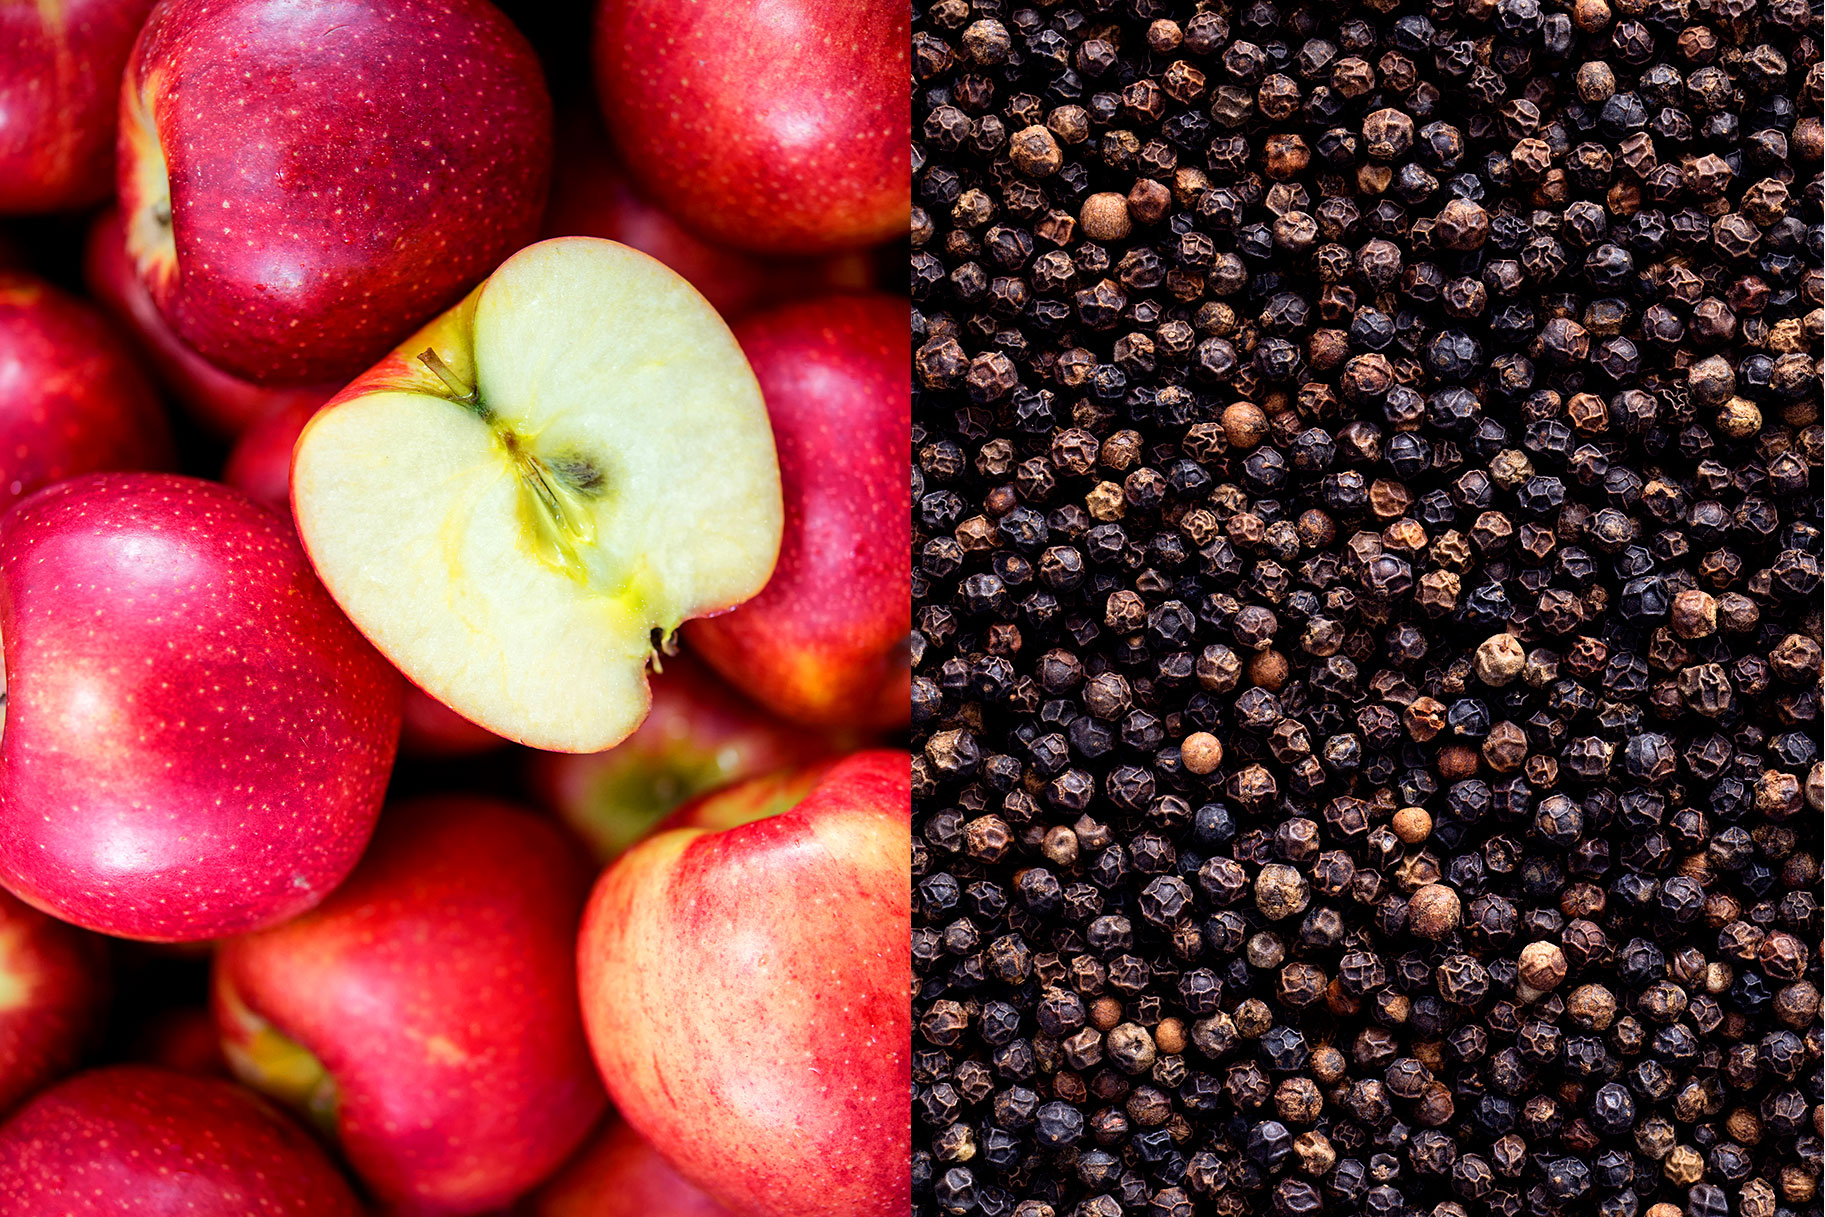 Apples and Black Pepper